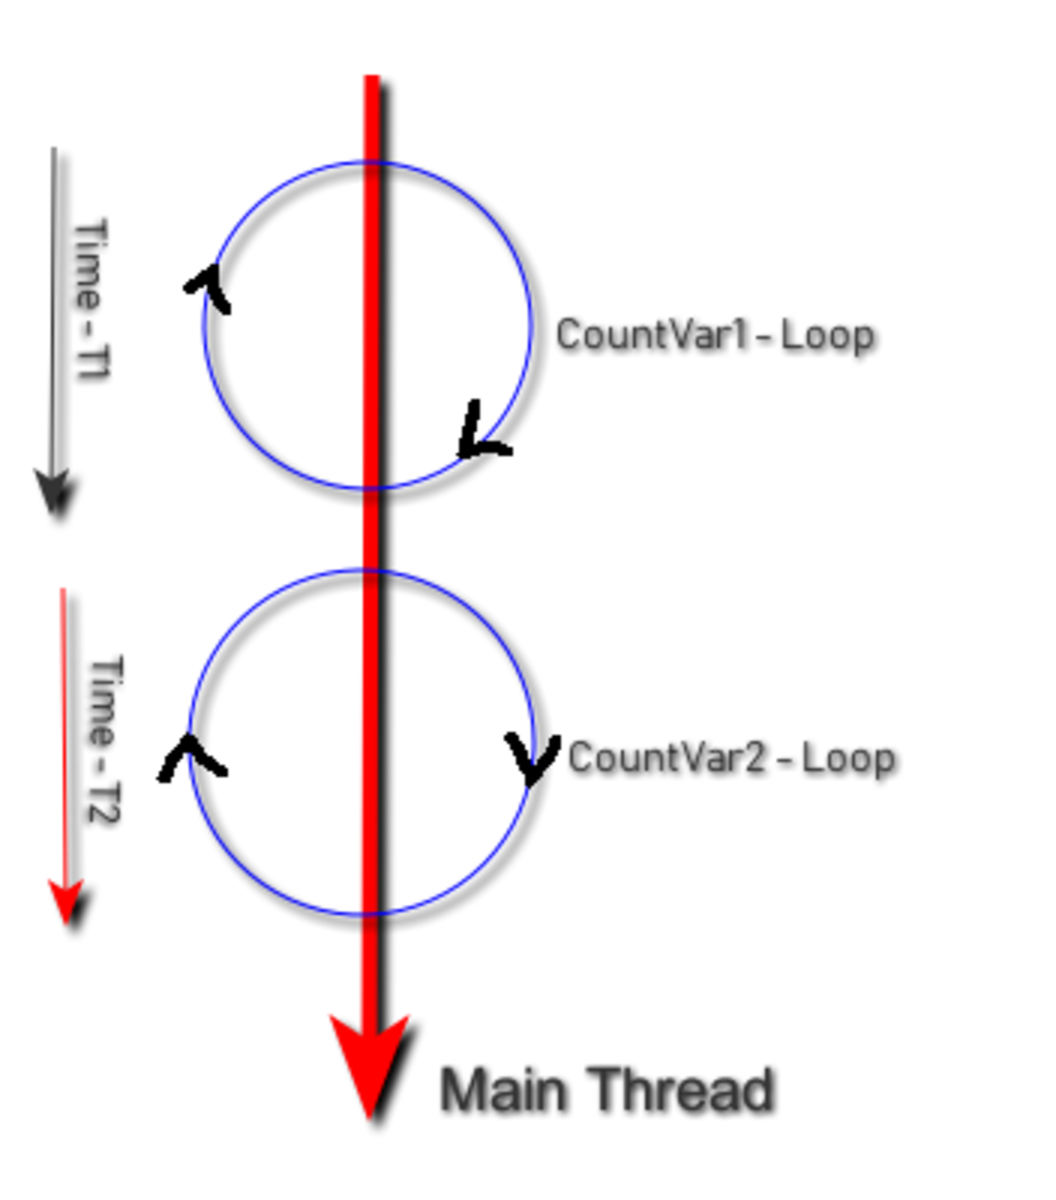 Two counting loops in Main Thread Context